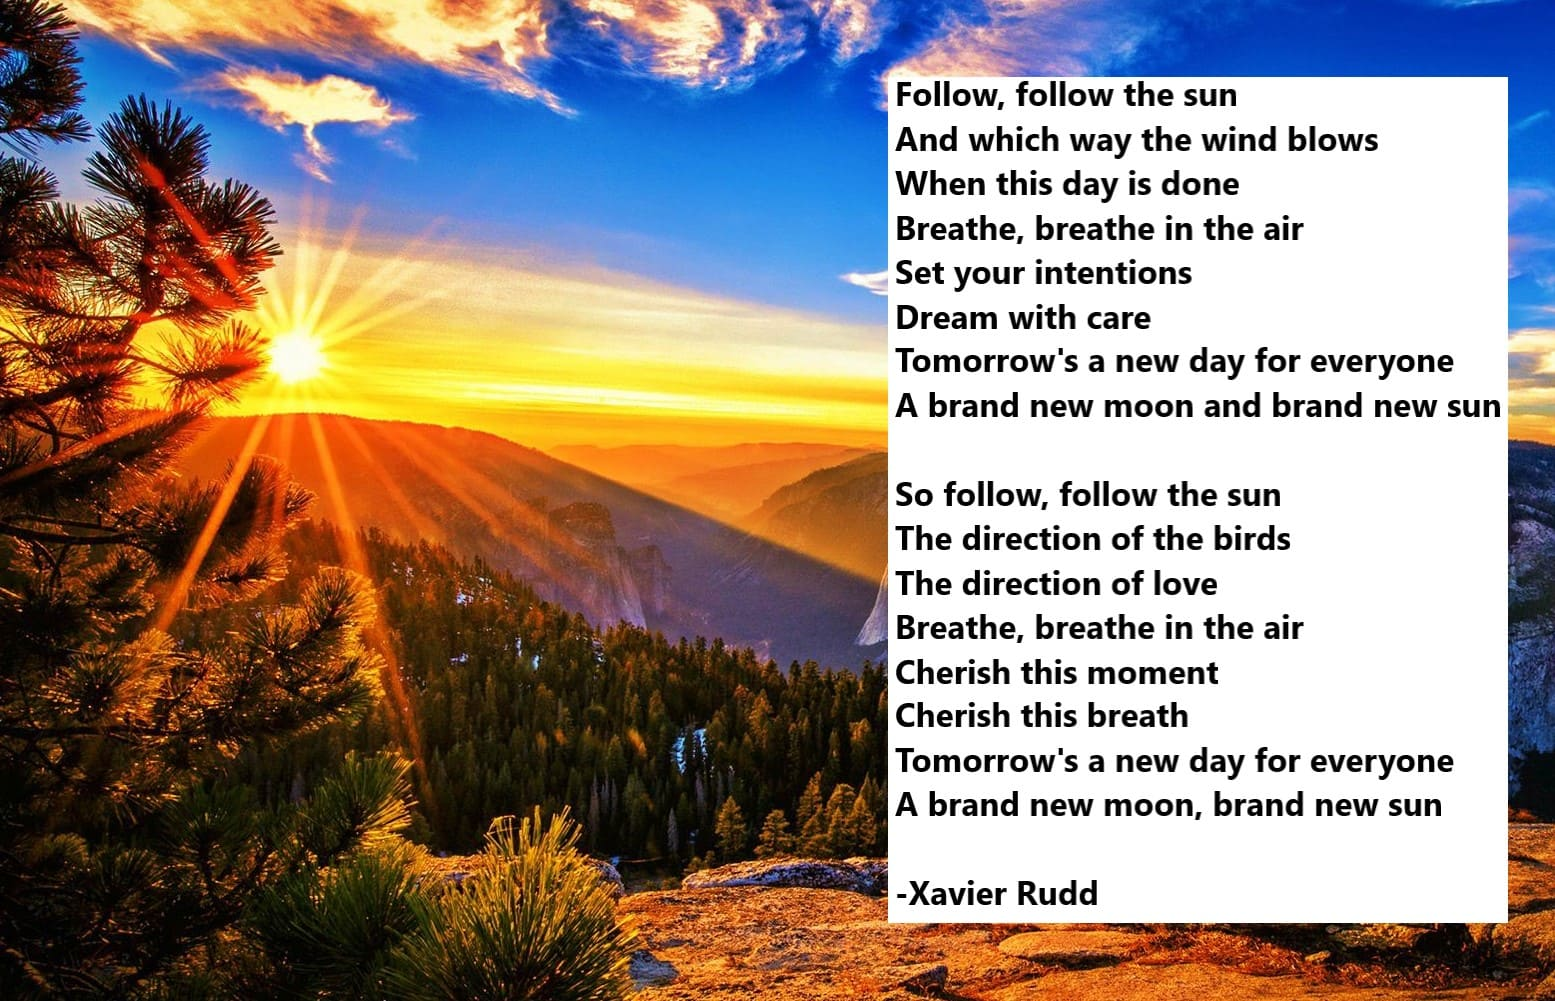 follow the sun inspirational meme, xavier rudd inspirational meme, tomorrow is a new day for everyone inspirational meme